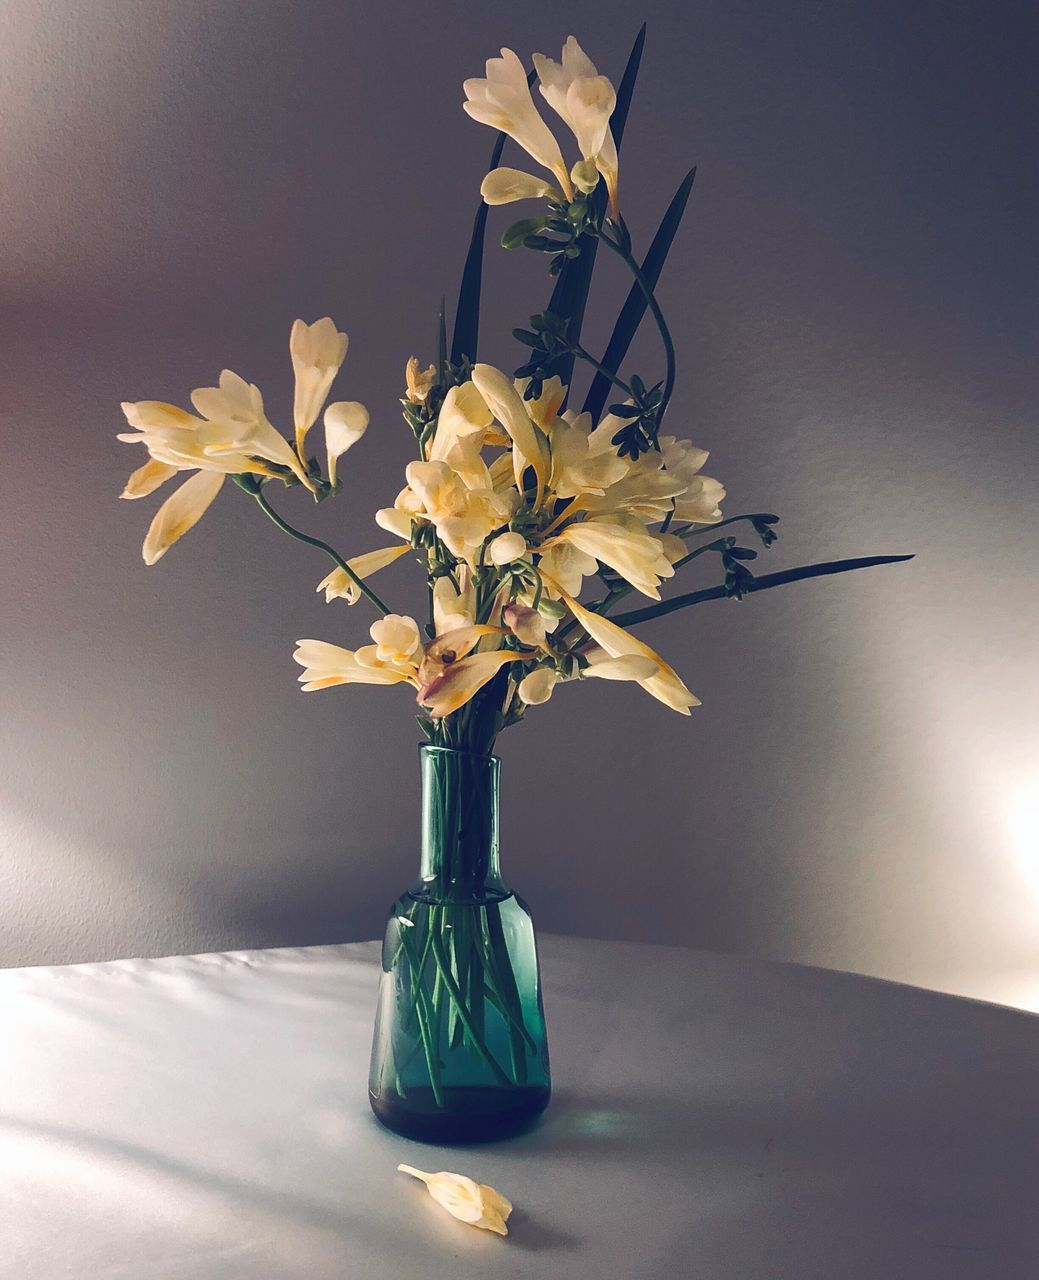 flower, vase, petal, flower head, fragility, flower arrangement, table, beauty in nature, blossom, indoors, bouquet, no people, daffodil, freshness, nature, branch, leaf, close-up, blooming, day